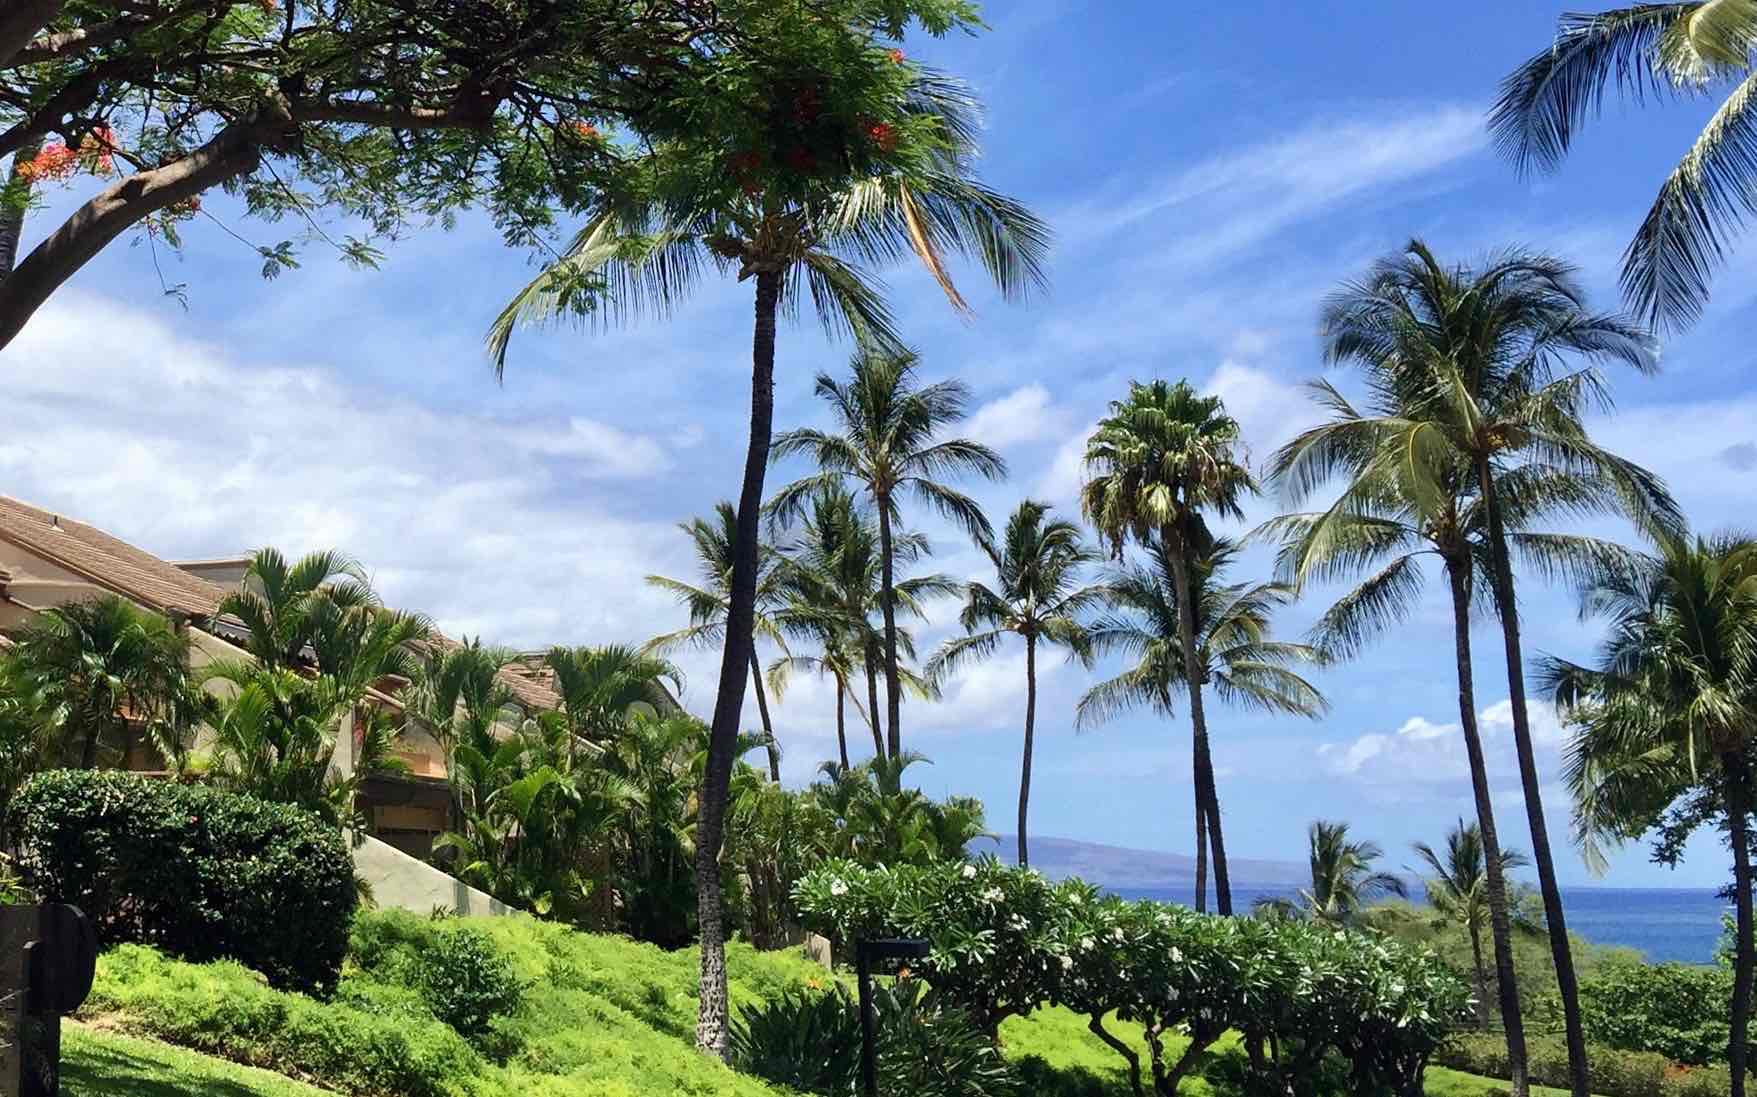 maui kamaole views